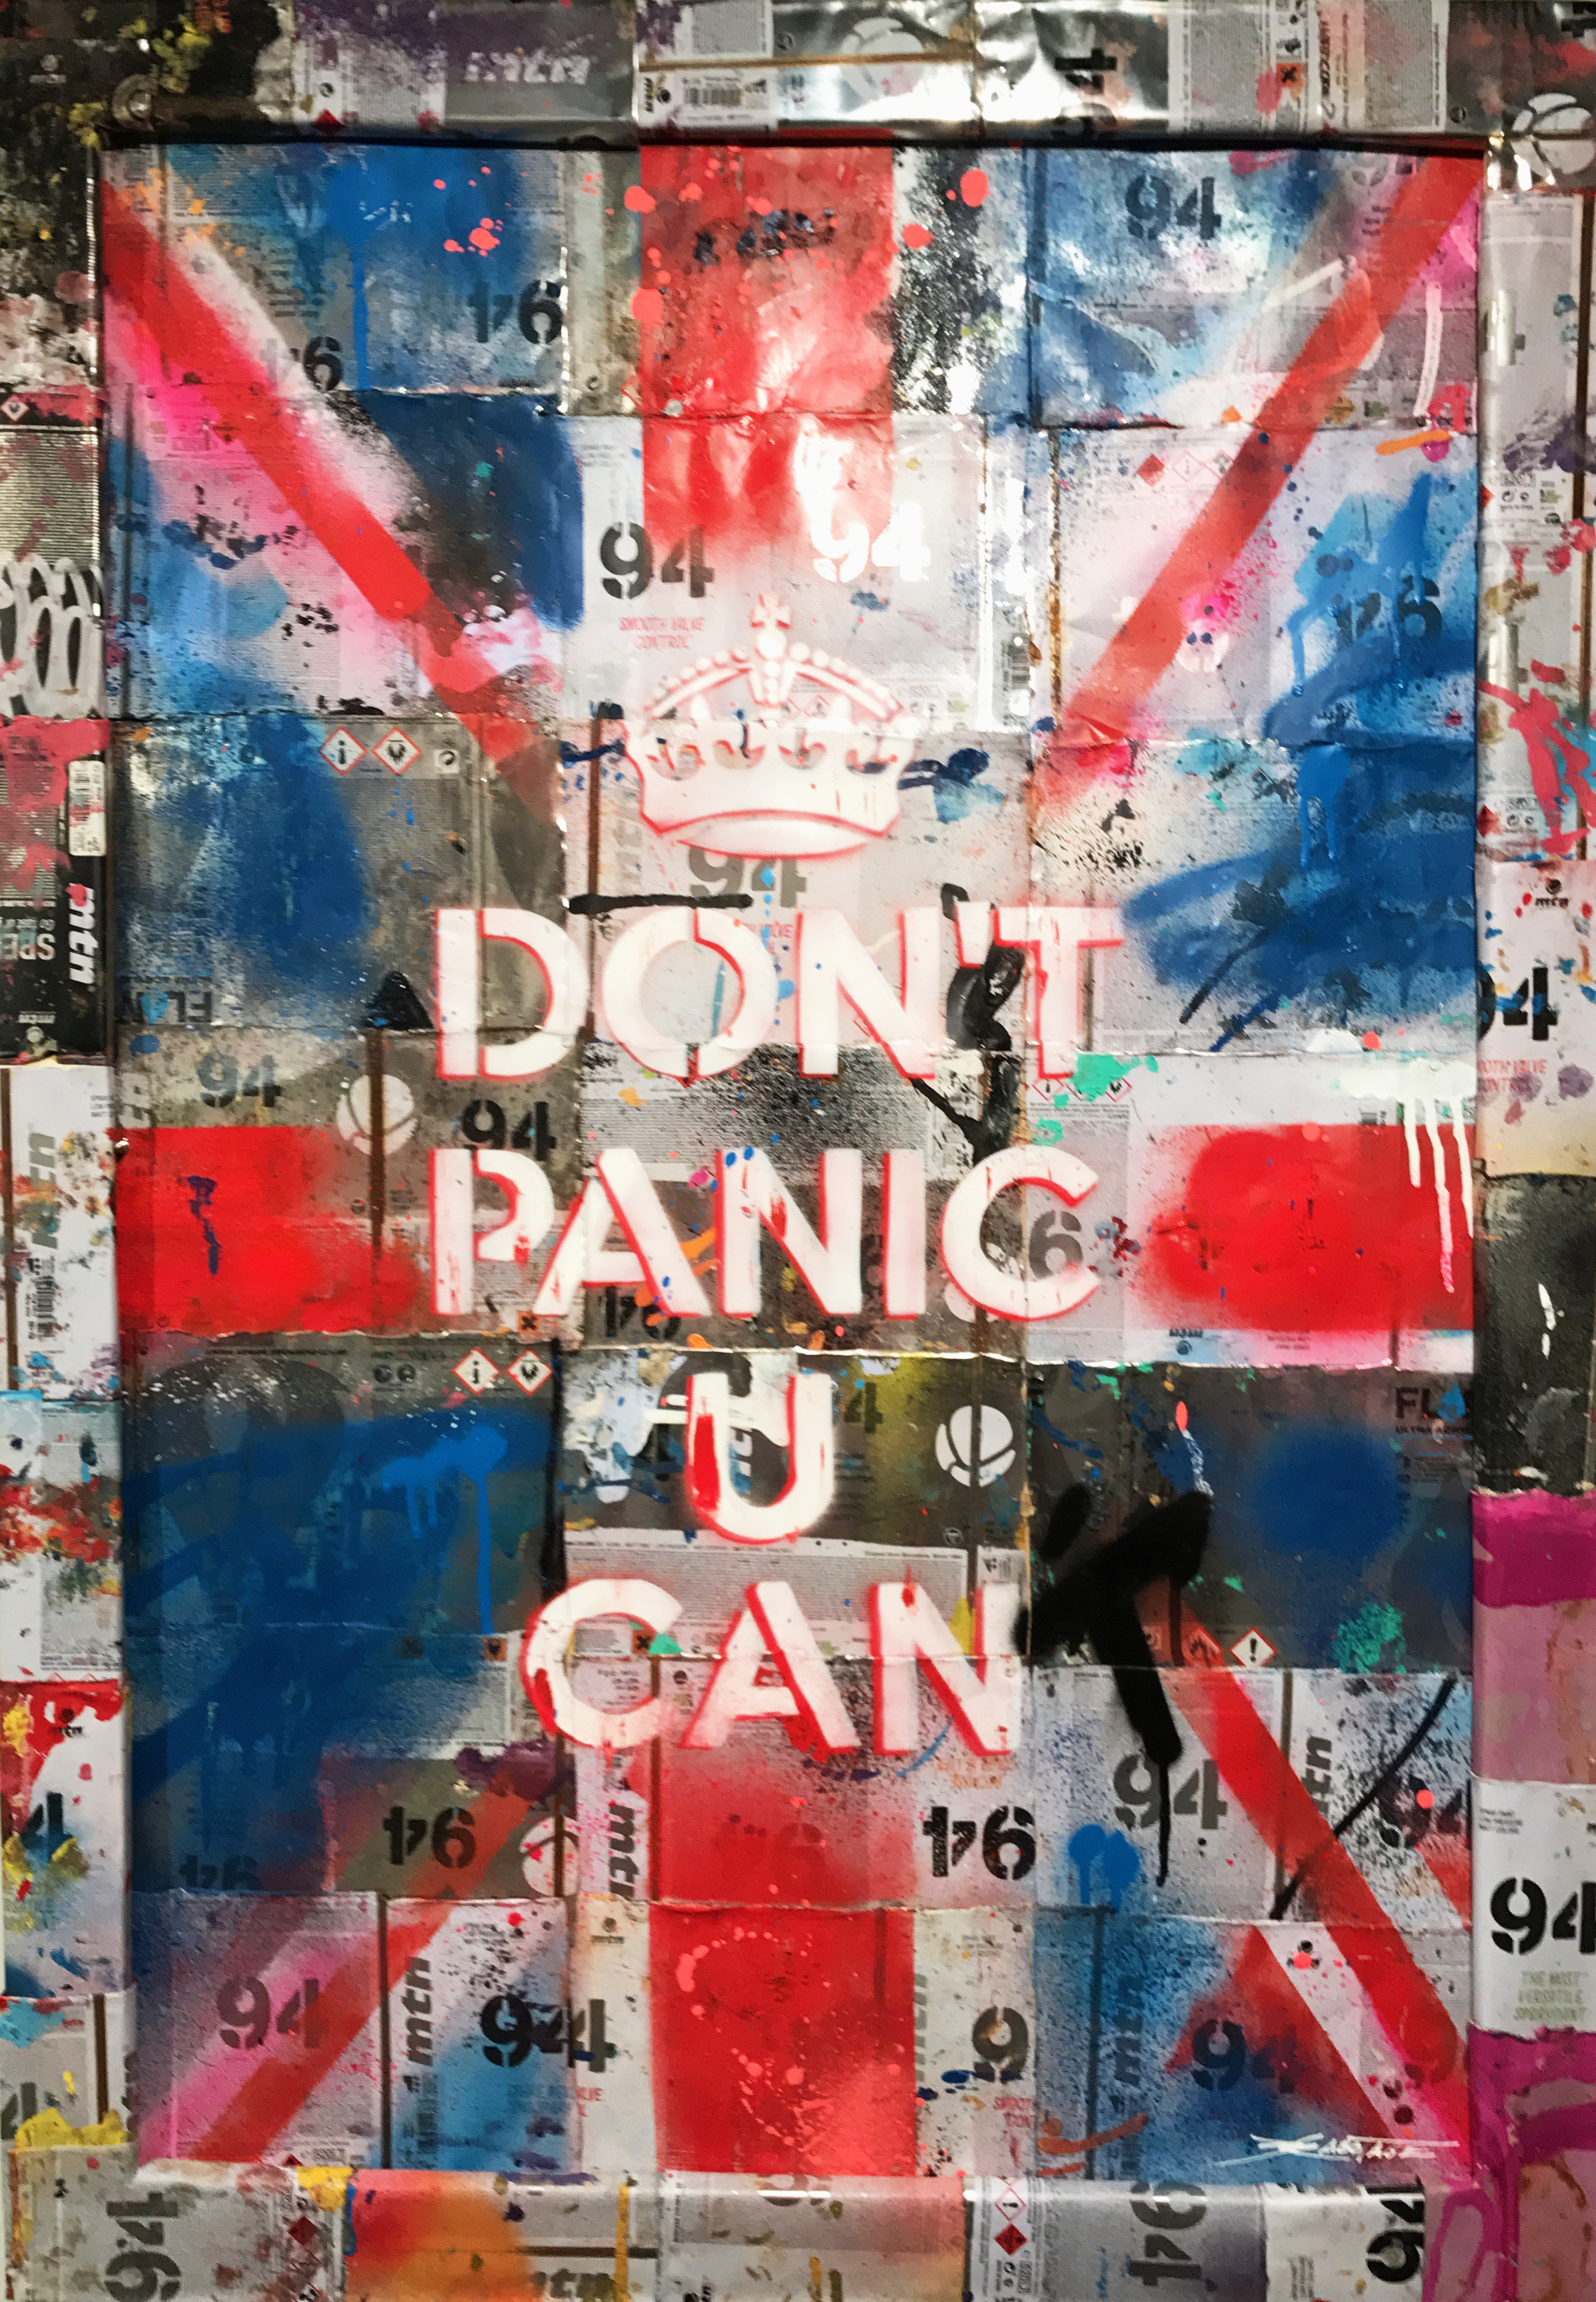 """Patriotic Panic"" Stencil and Hand Spray Paint on Deconstructed Can Background 60 x 90 cm 2017"